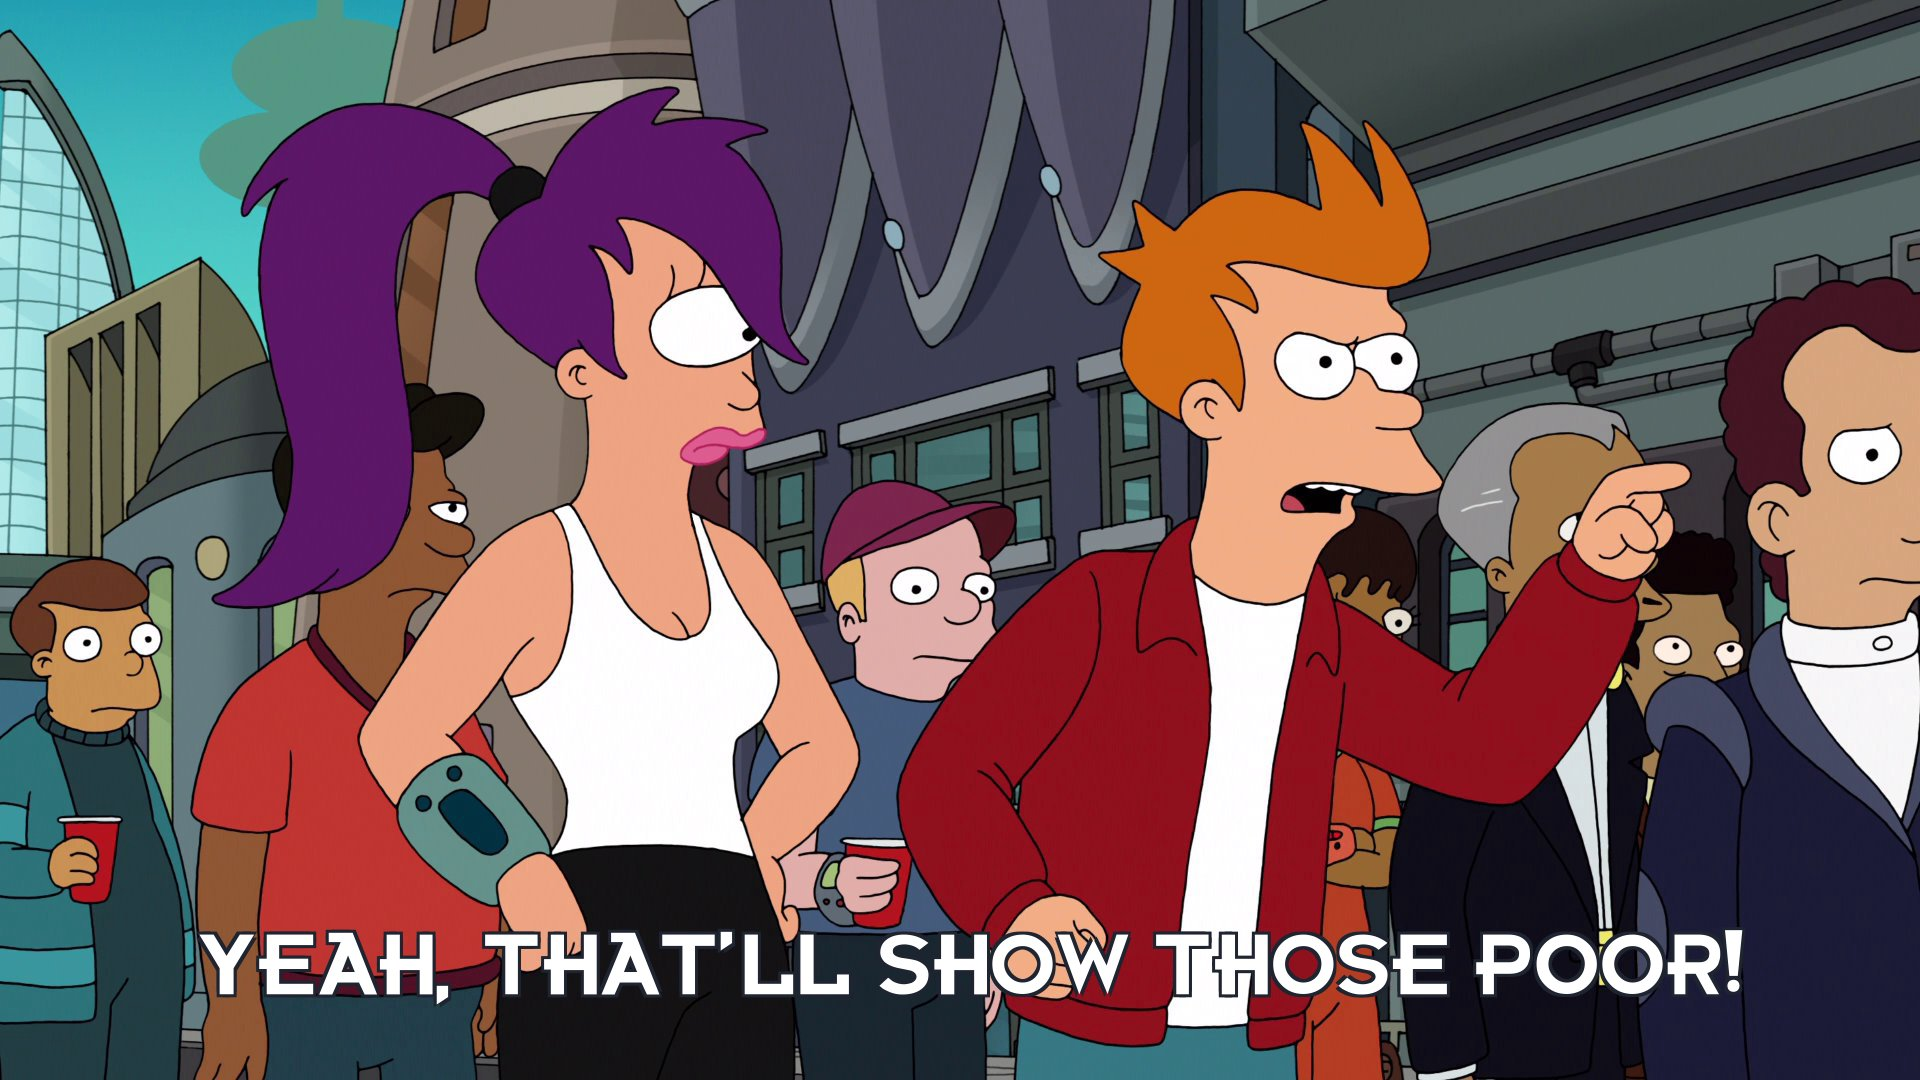 Philip J Fry: Yeah, that'll show those poor!